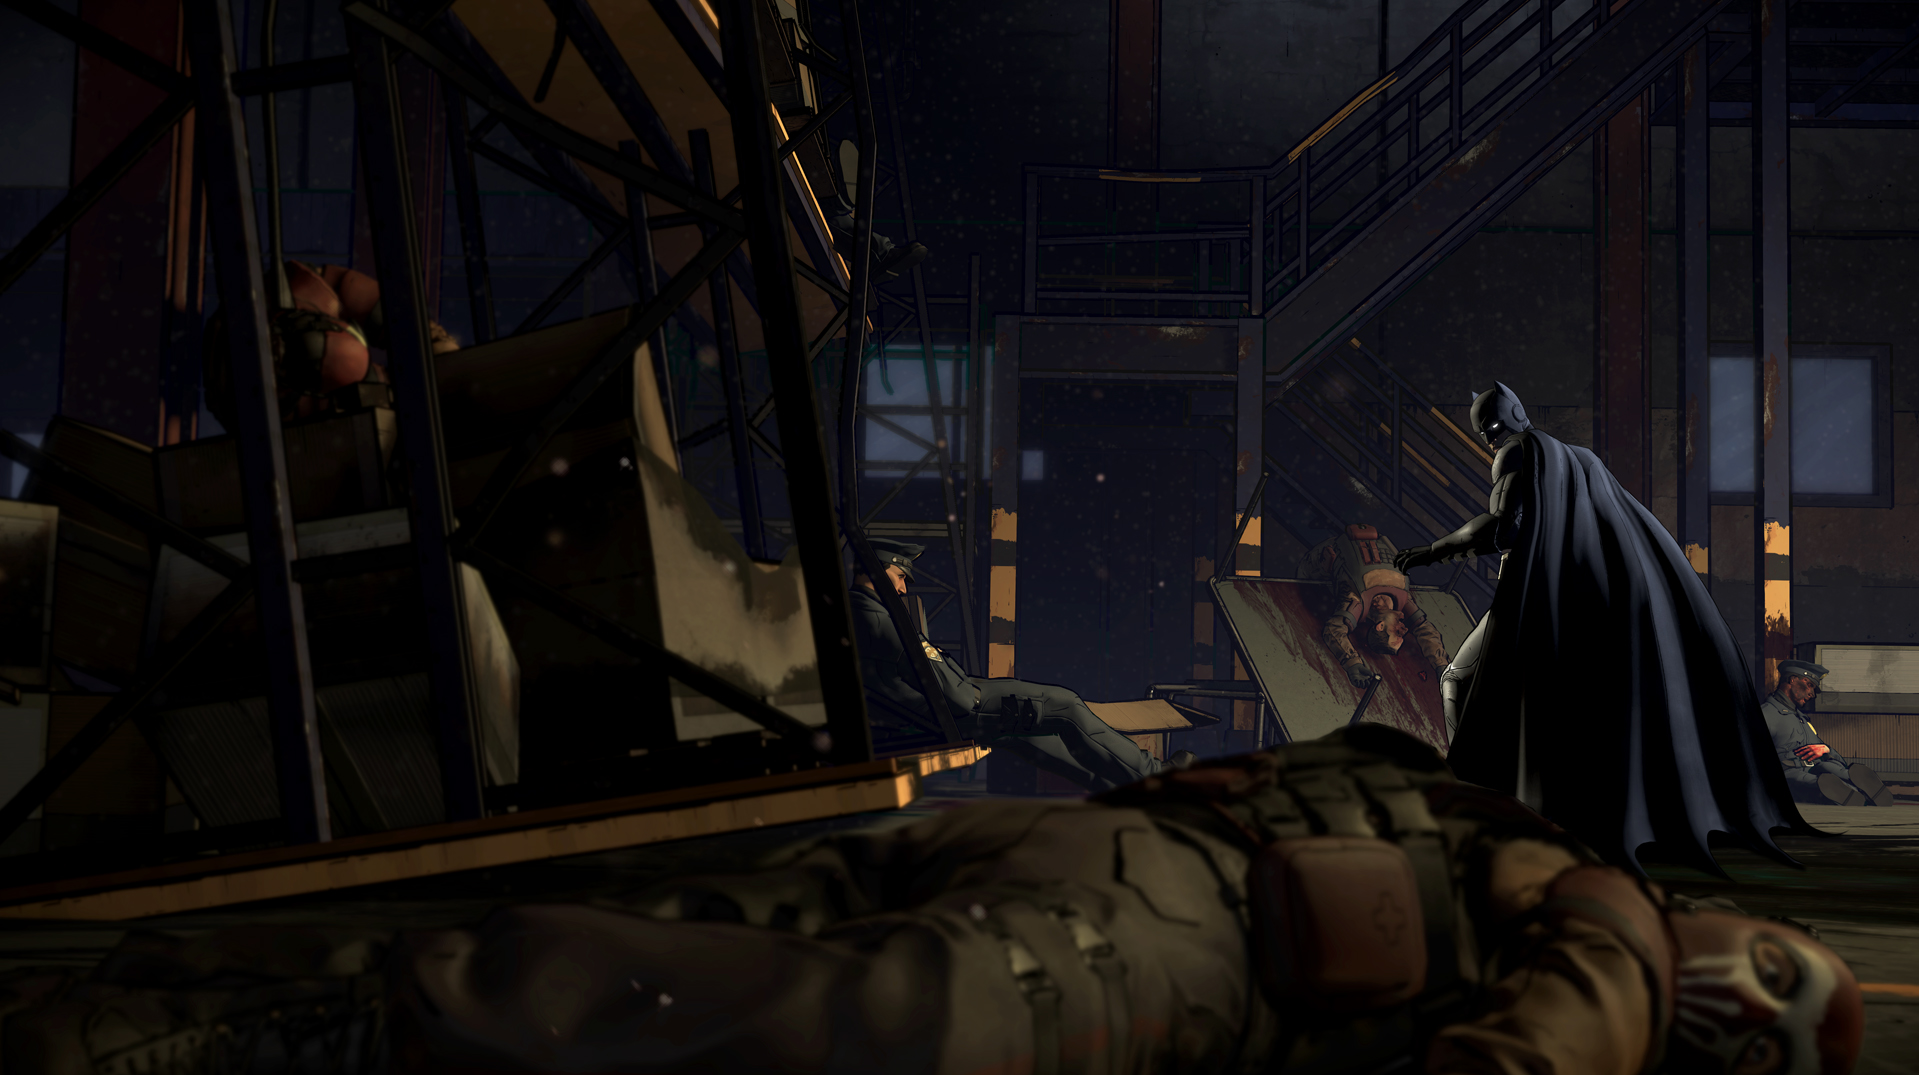 ss c12516b80b0e1d987b726883e5b299cc9b29e769.1920x1080 - Batman - The Telltale Series - PC Completo